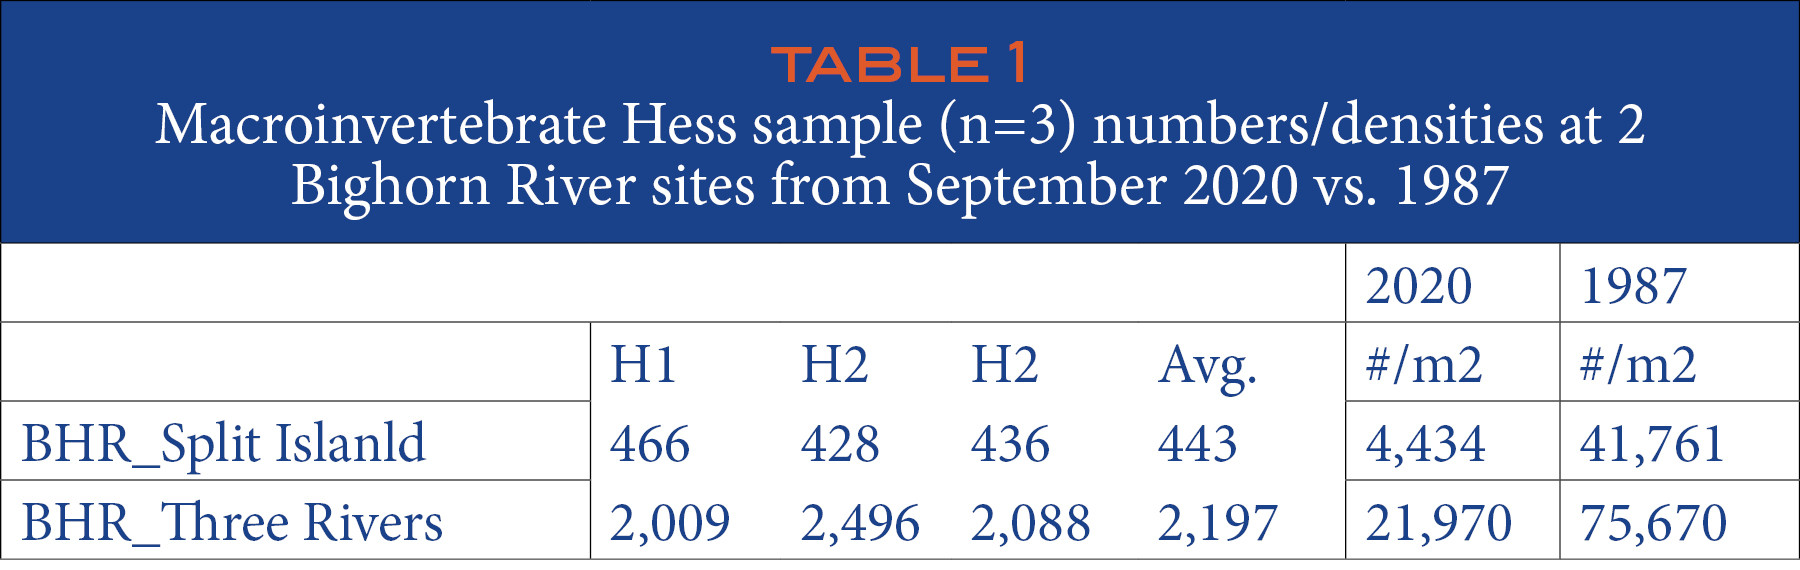 TABLE 1 Macroinvertebrate Hess sample (n=3) numbers/densities at 2 Bighorn River sites from September 2020 vs. 1987